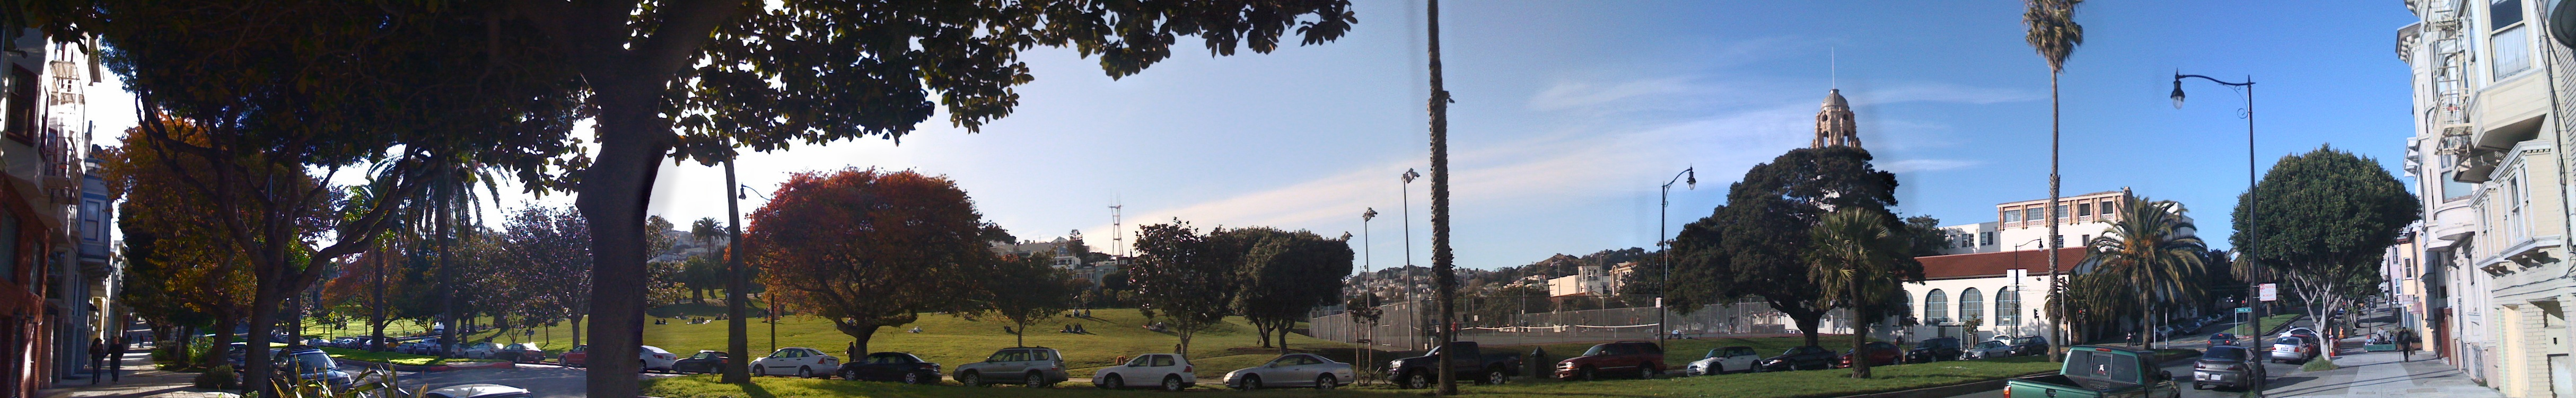 across-the-street-from-dolores-park-180-panorama1